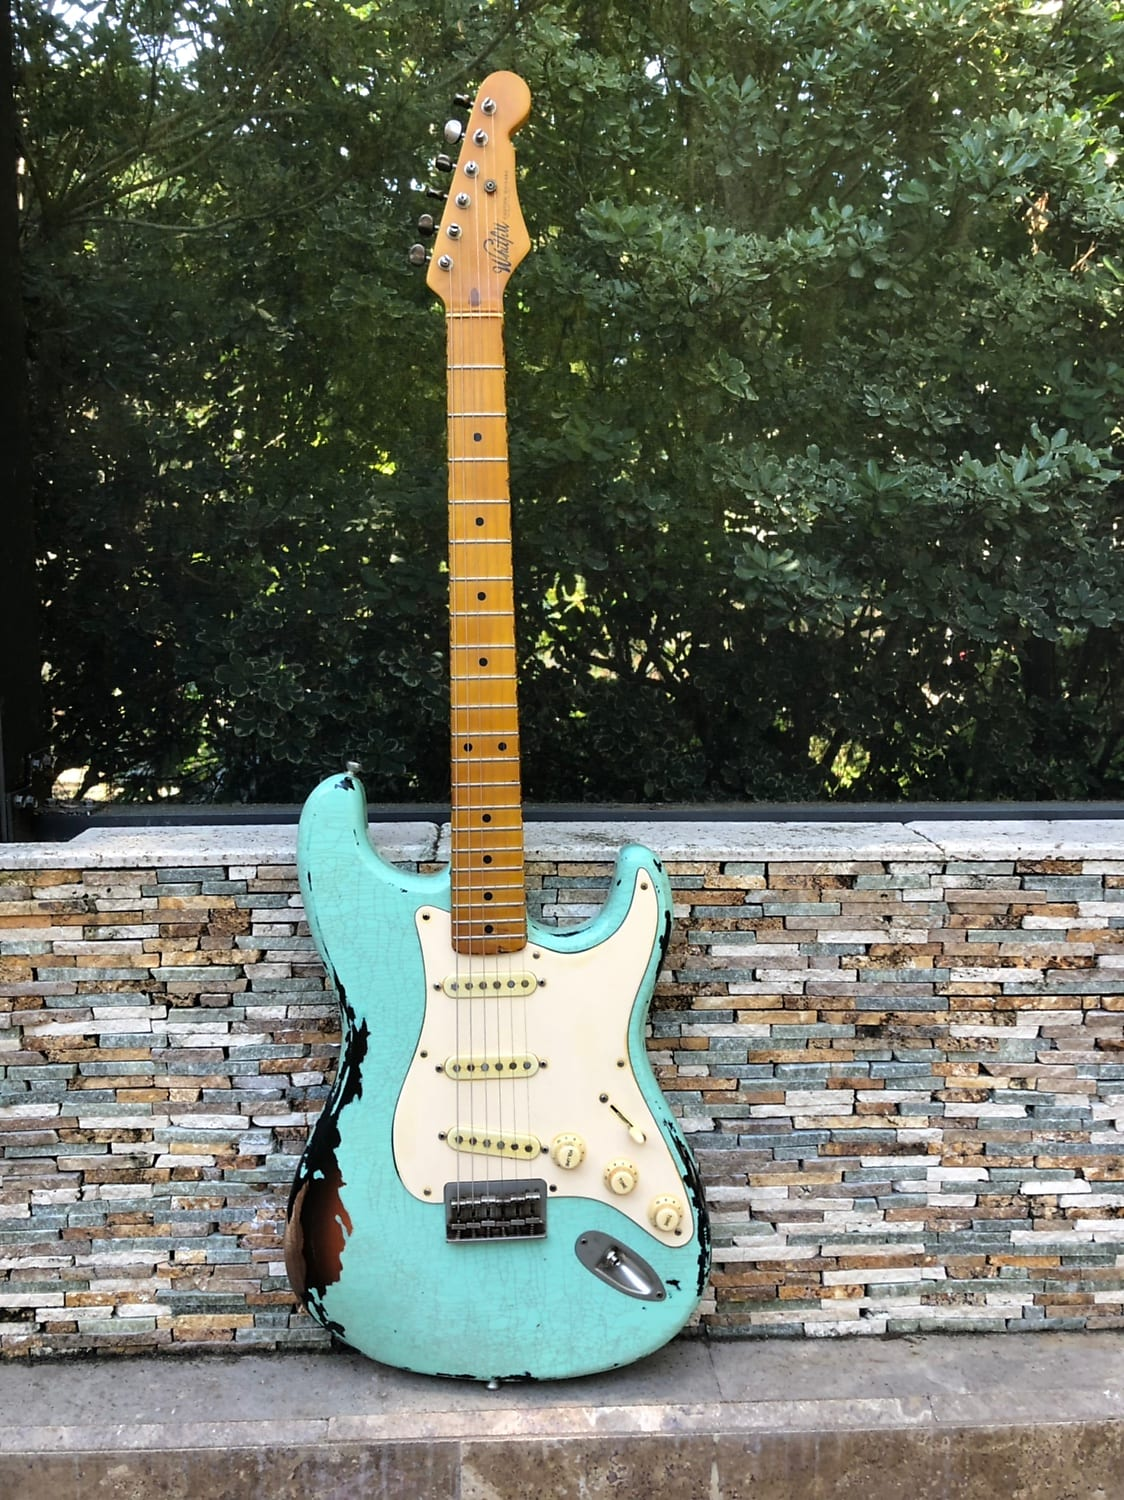 Whitfill S  Surf Green over Sunburst KILLER Relic Strat! *Authorized Dealer*